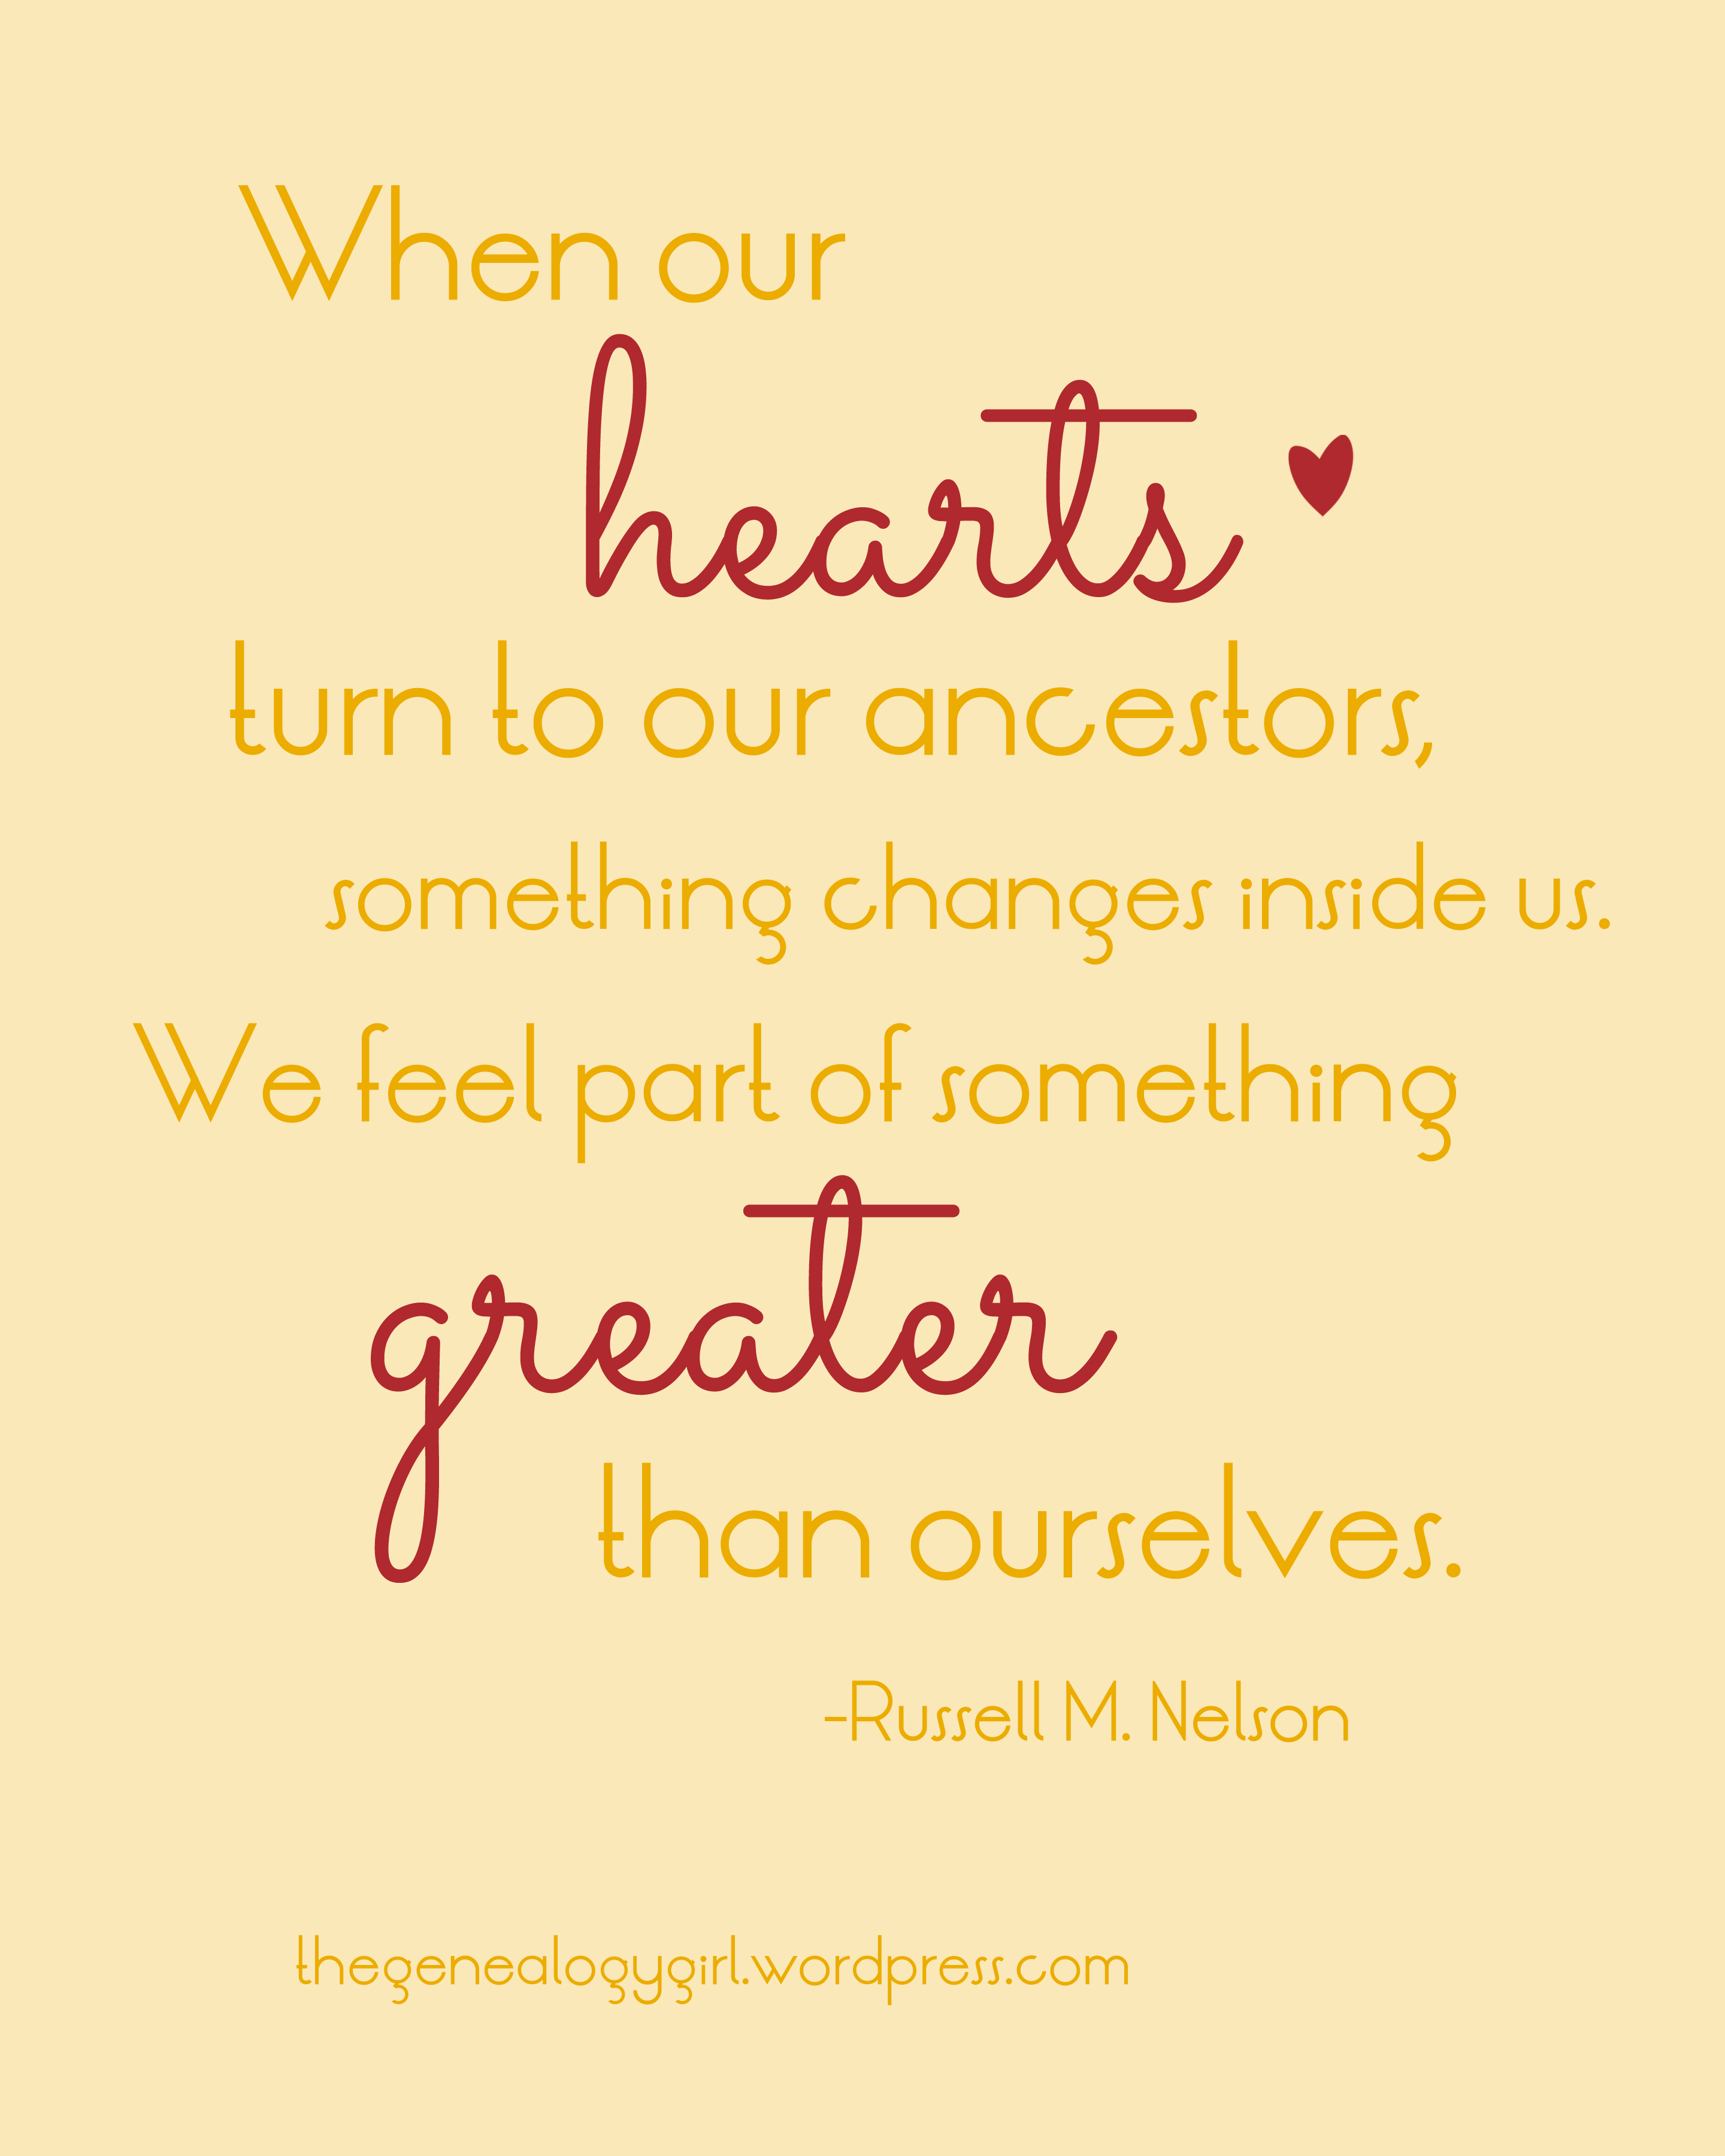 Quotes About Family Russell Mnelson Quote 2  Thegenealogygirl